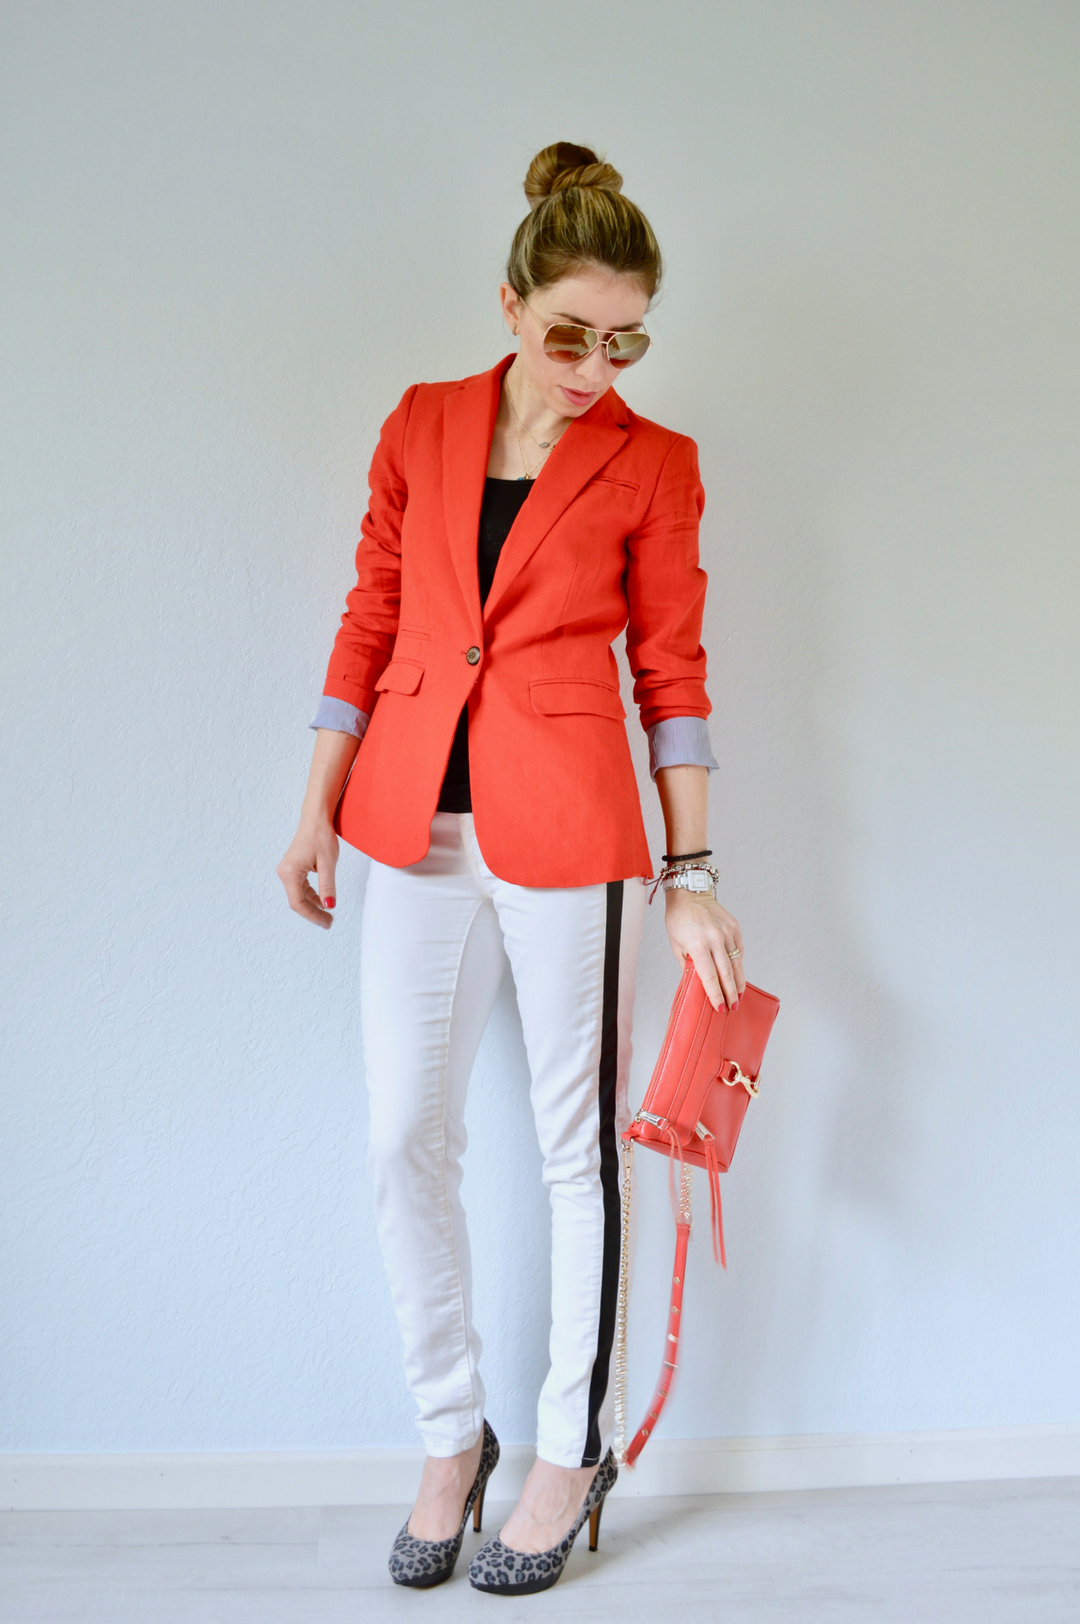 Long Length Boyfriend Blazer: A slightly relaxed fit and long length give it that easy